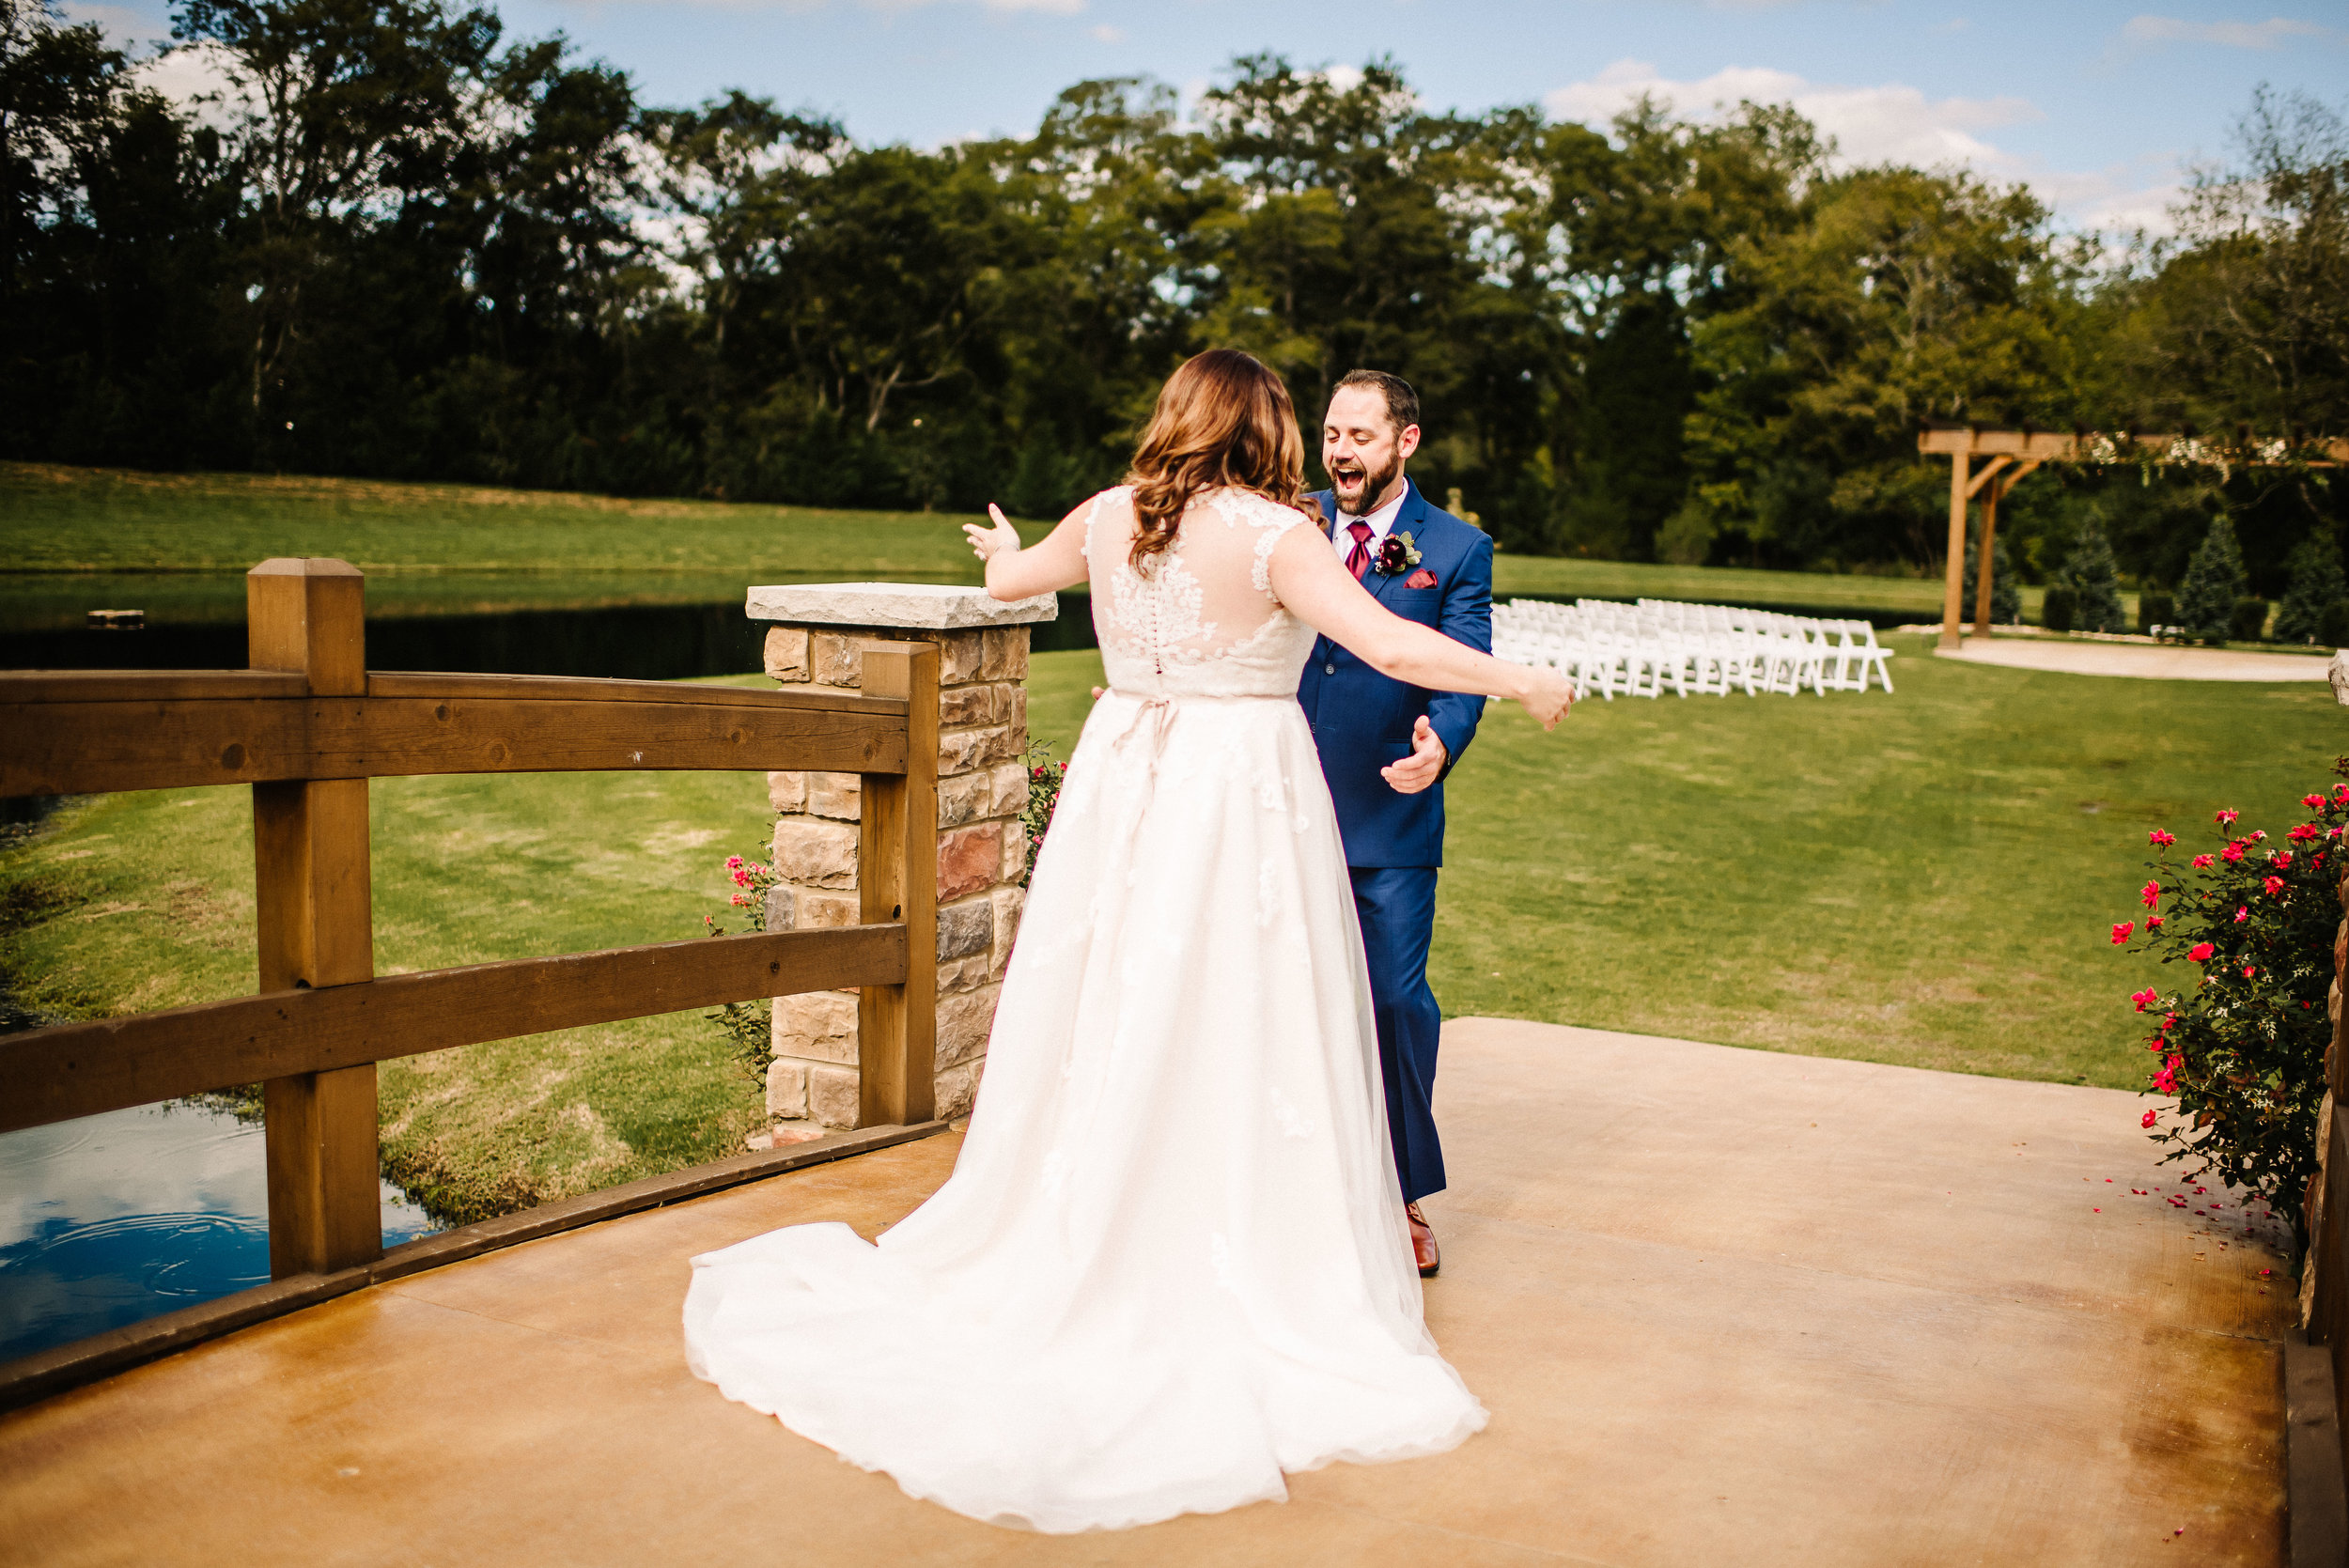 Loecher Wedding_Barn at Sycamore Farms_Ashley Benham Photography-118.jpg